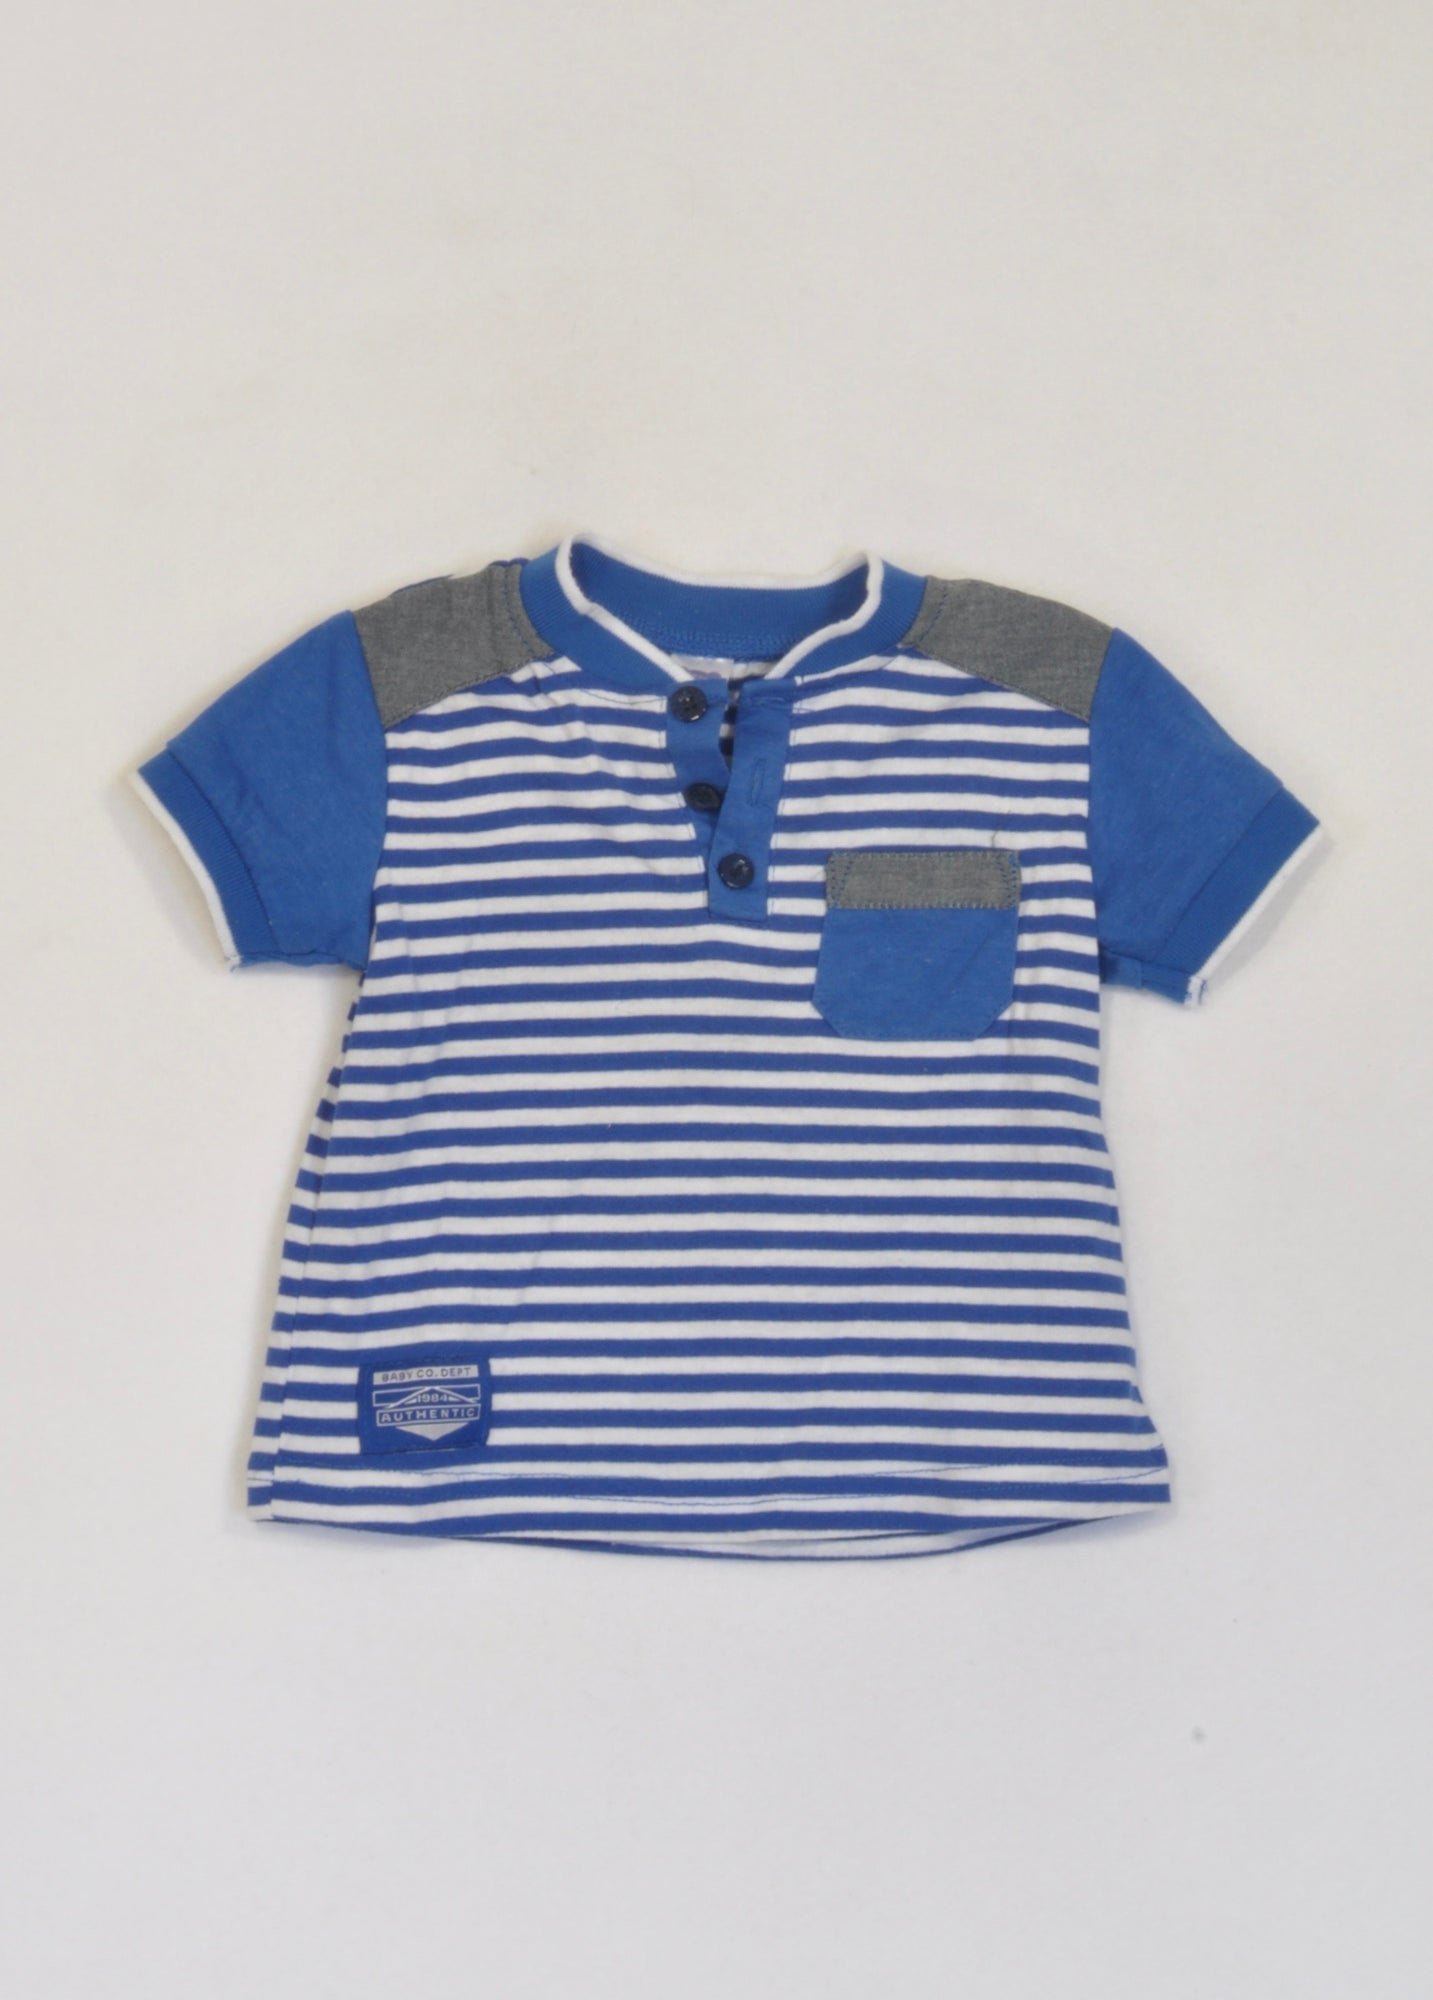 Ackermans Blue Striped Golf Shirt Boys 6-12 months